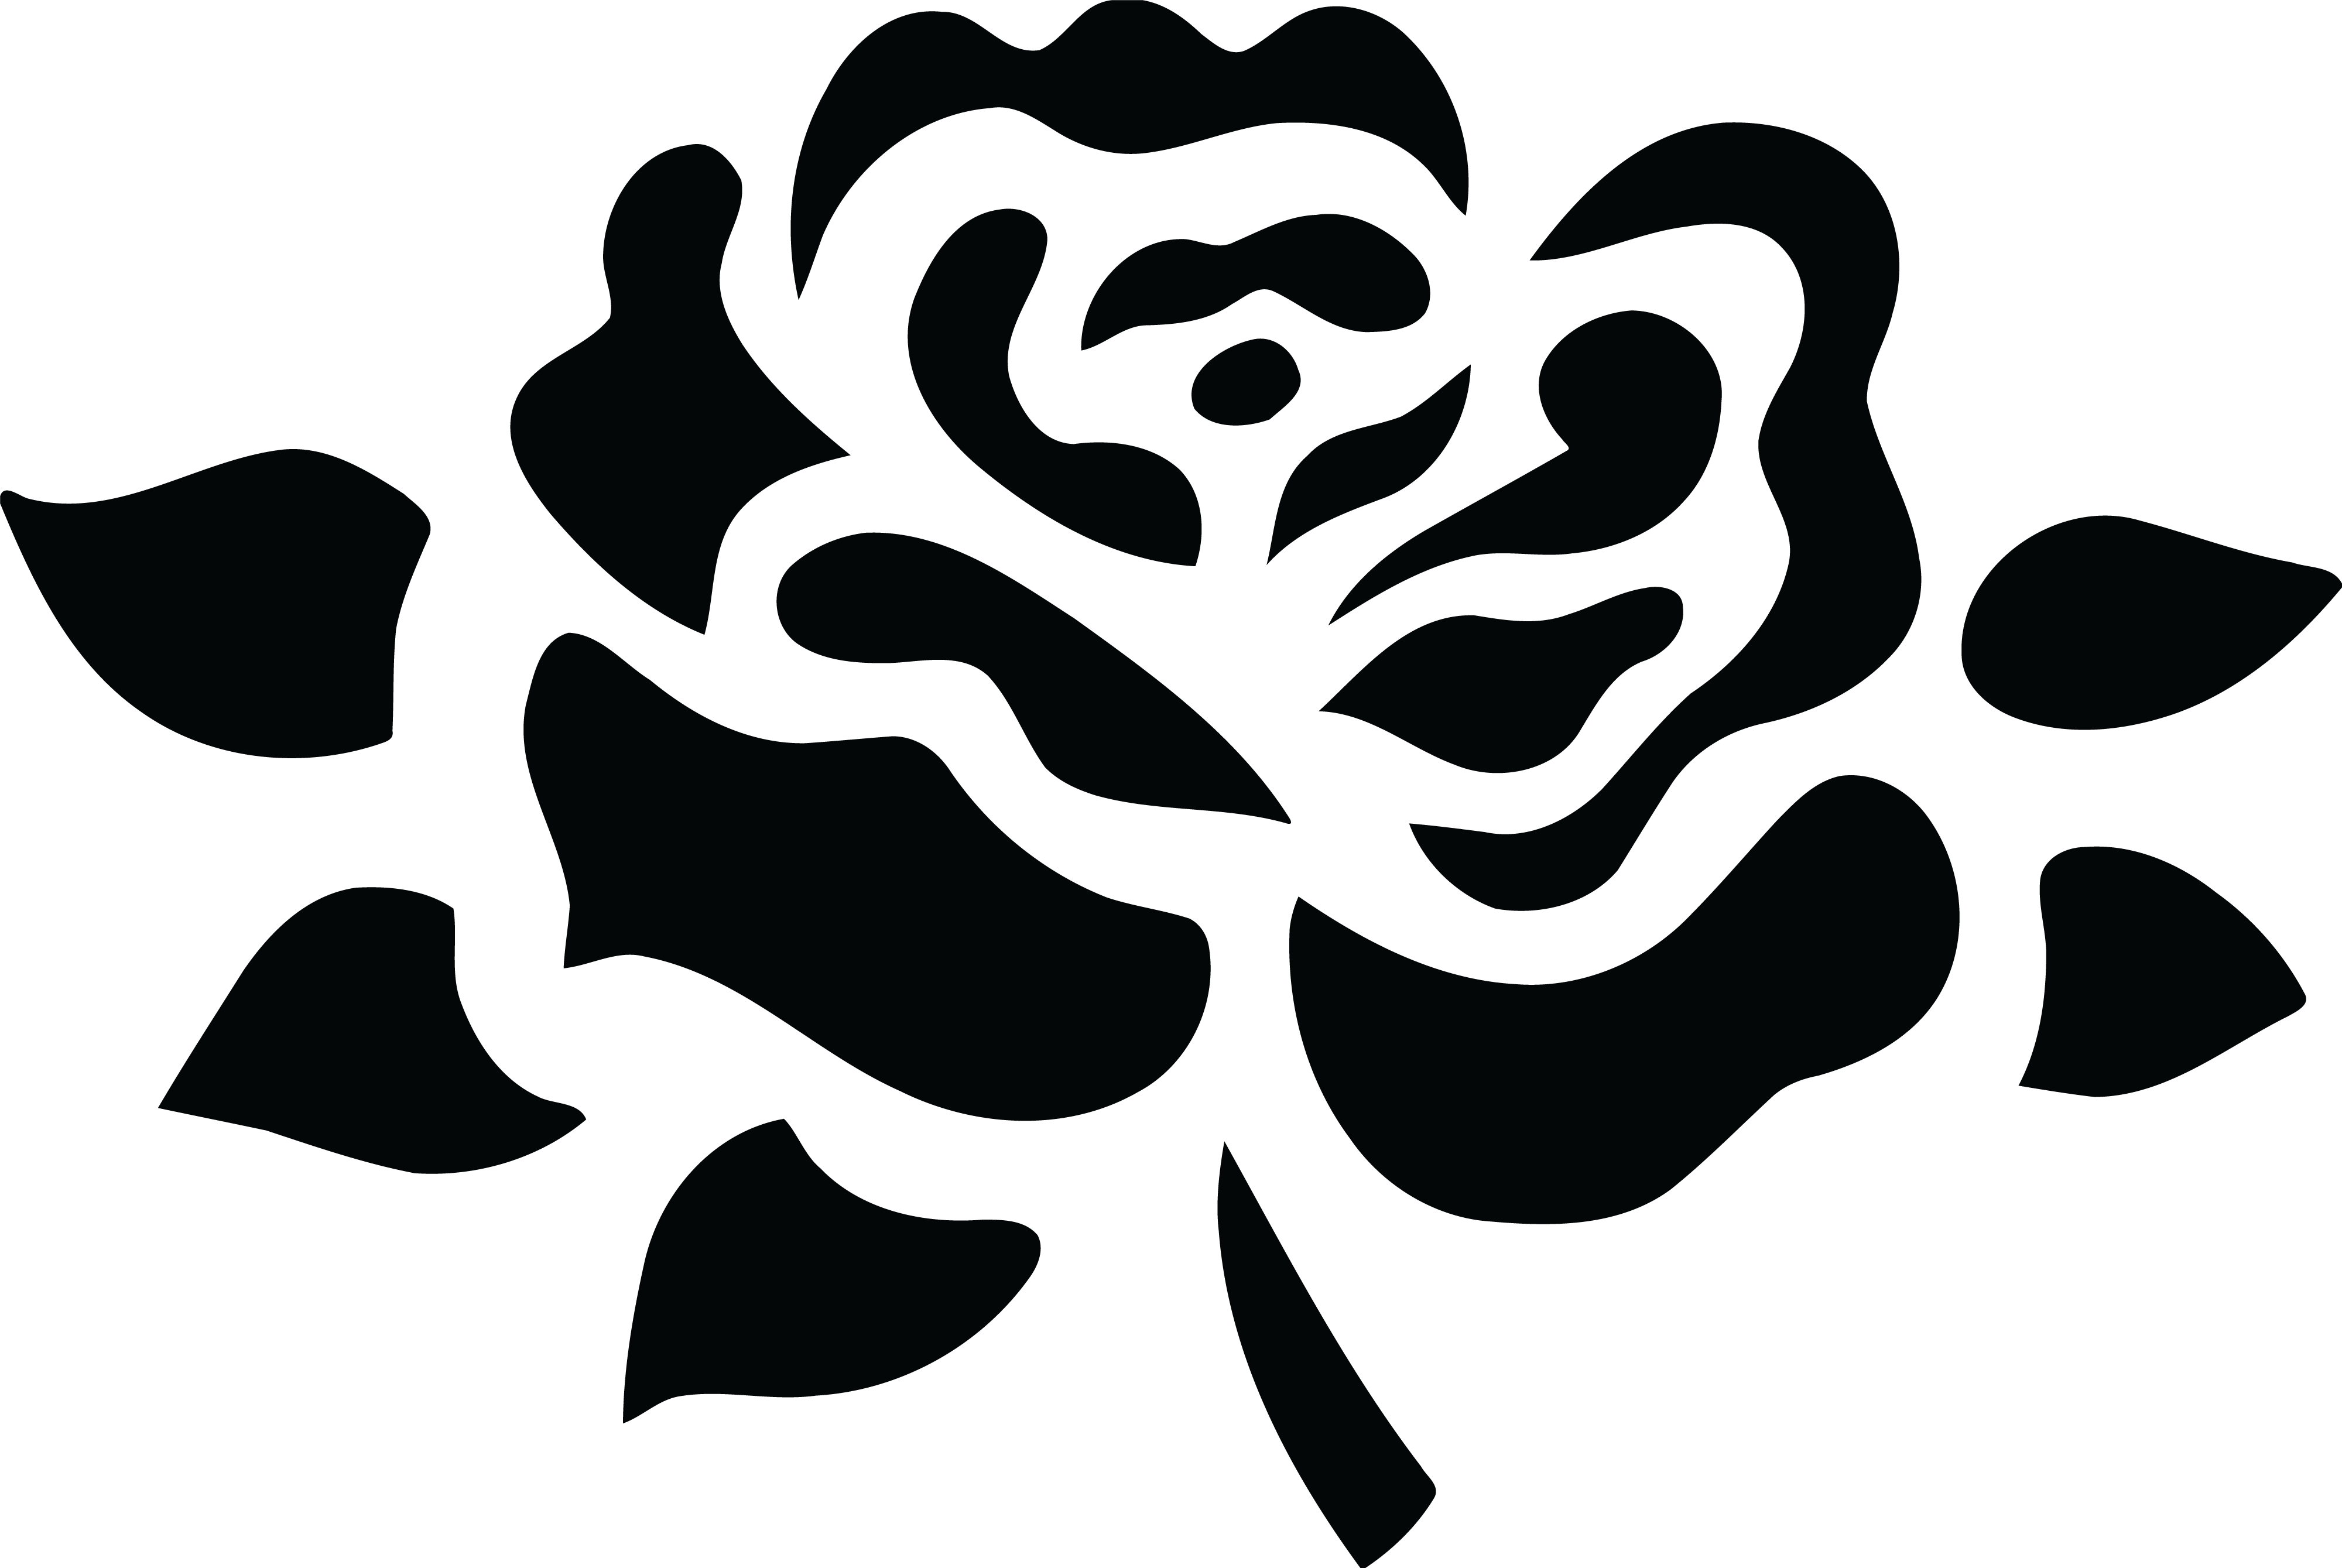 Rose clipart black and white png 1 » Clipart Station.